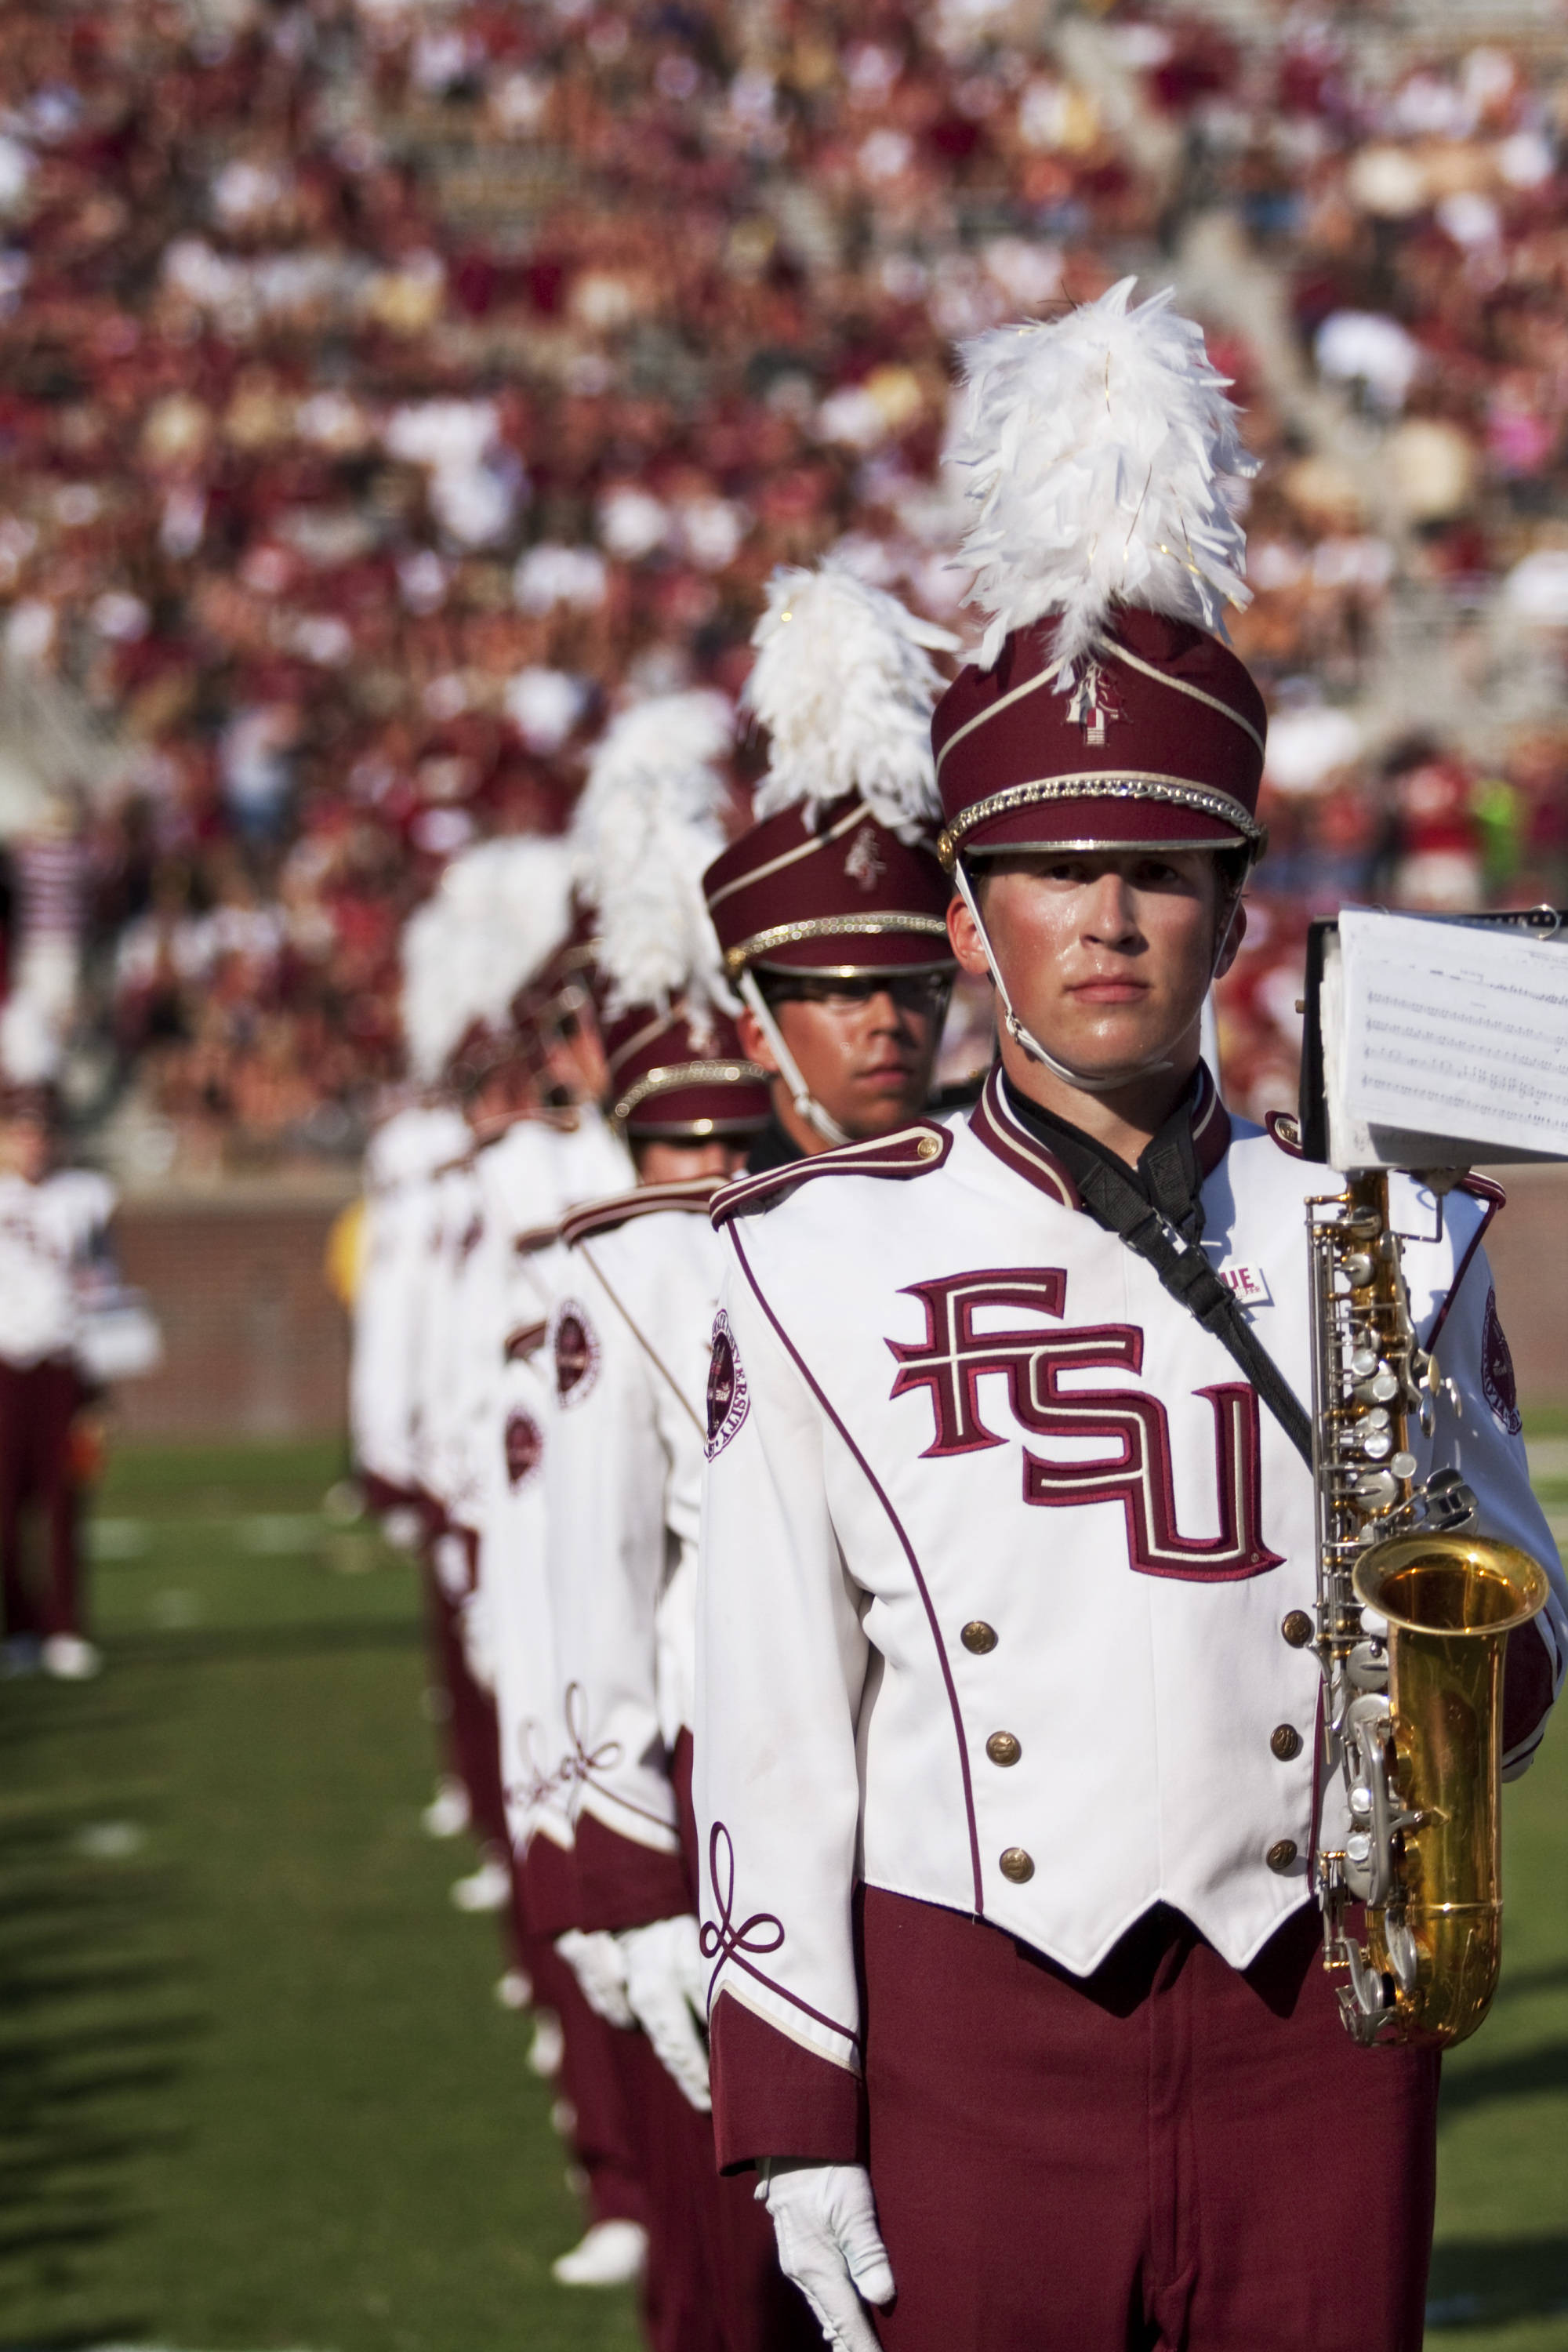 FSU Marching Chiefs perform during half time in the game against BYU.